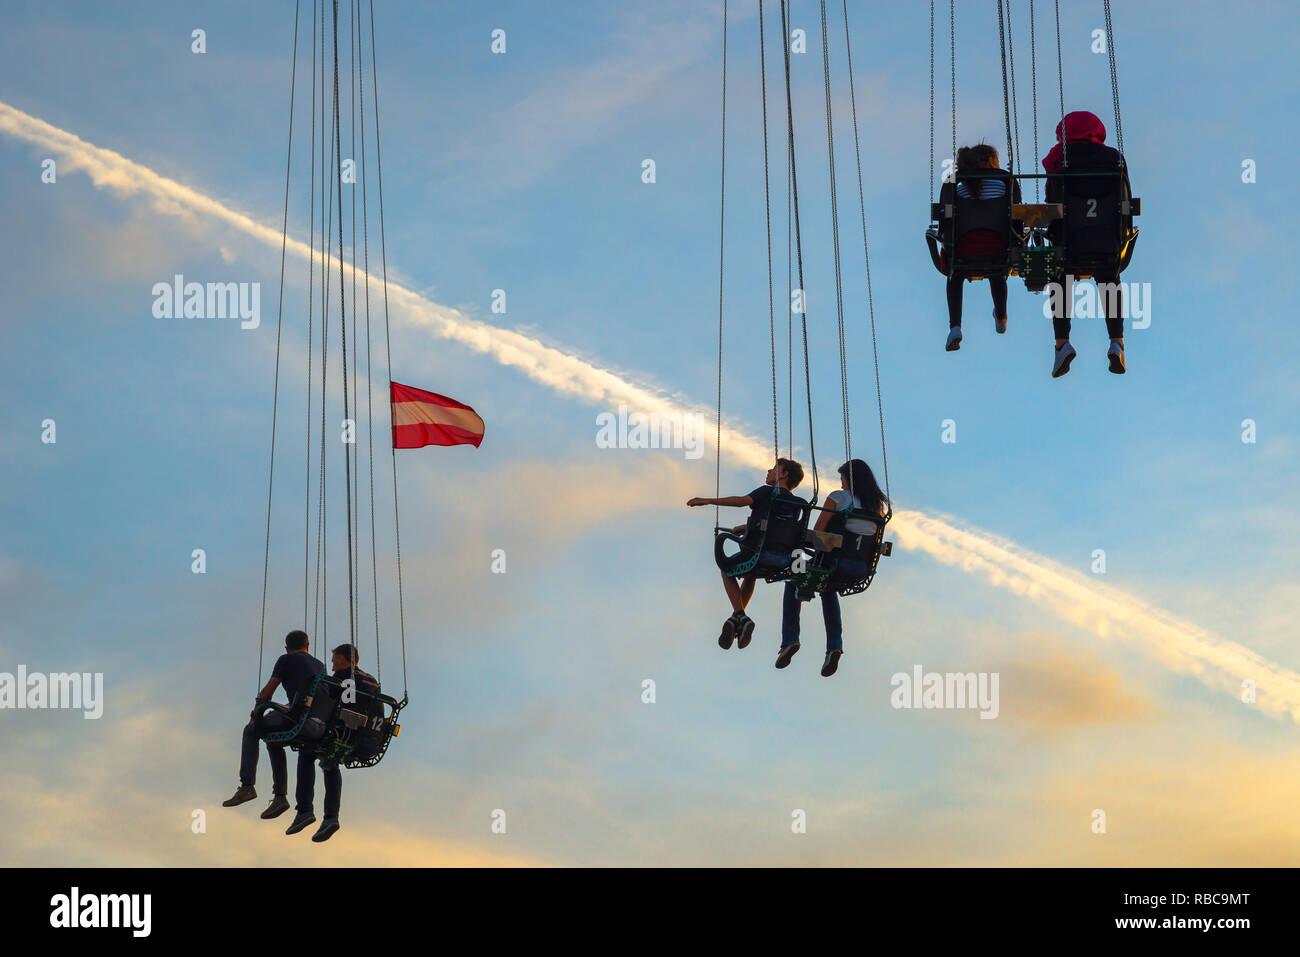 Stranded people waiting, couples suspended in mid-air on the Prater Turm in Vienna's Prater amusement park wait expectantly for the ride to begin. - Stock Image